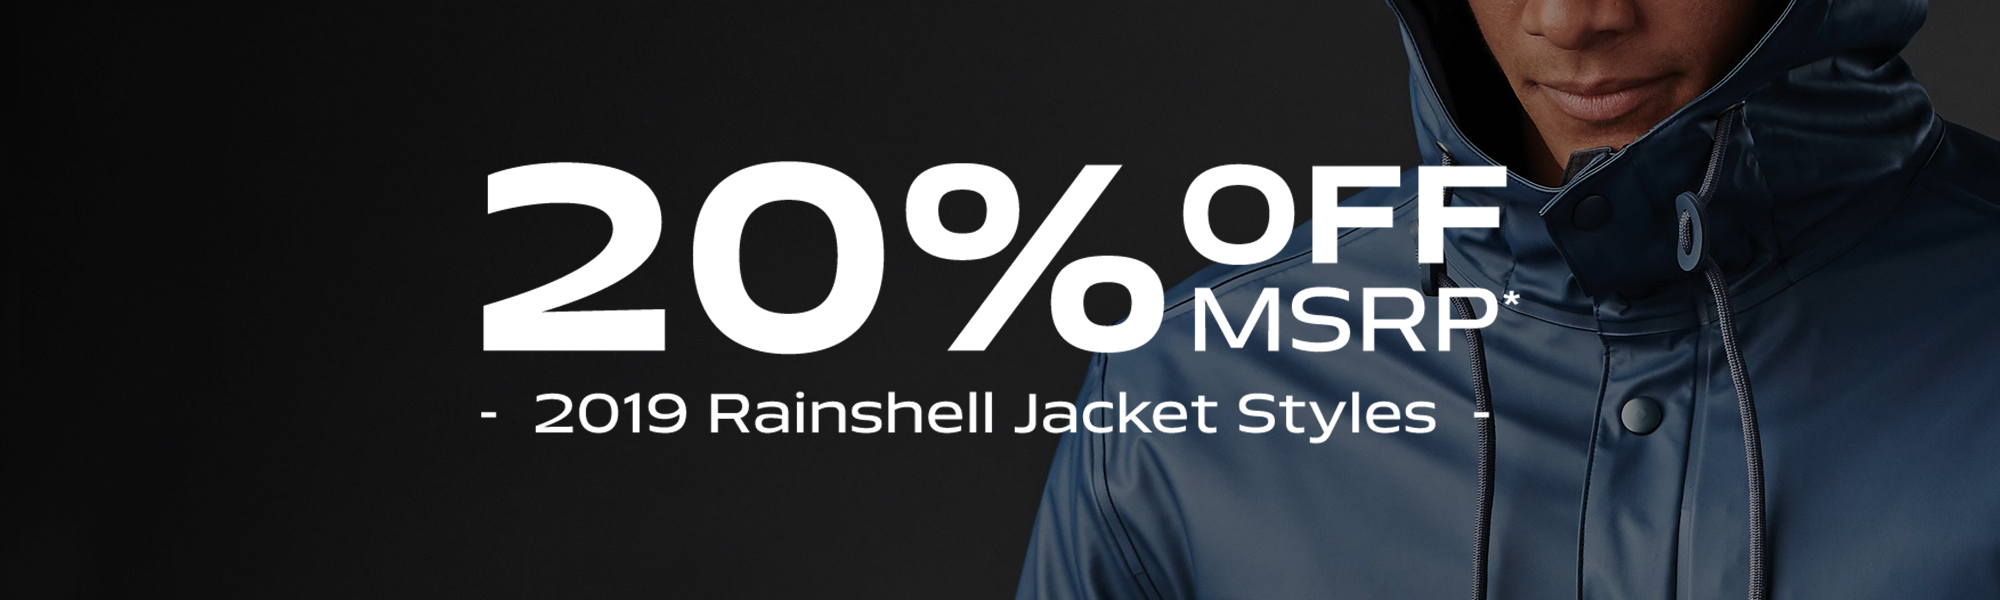 20% OFF MSRP. 2 NEW Rainshell Jacket Styles